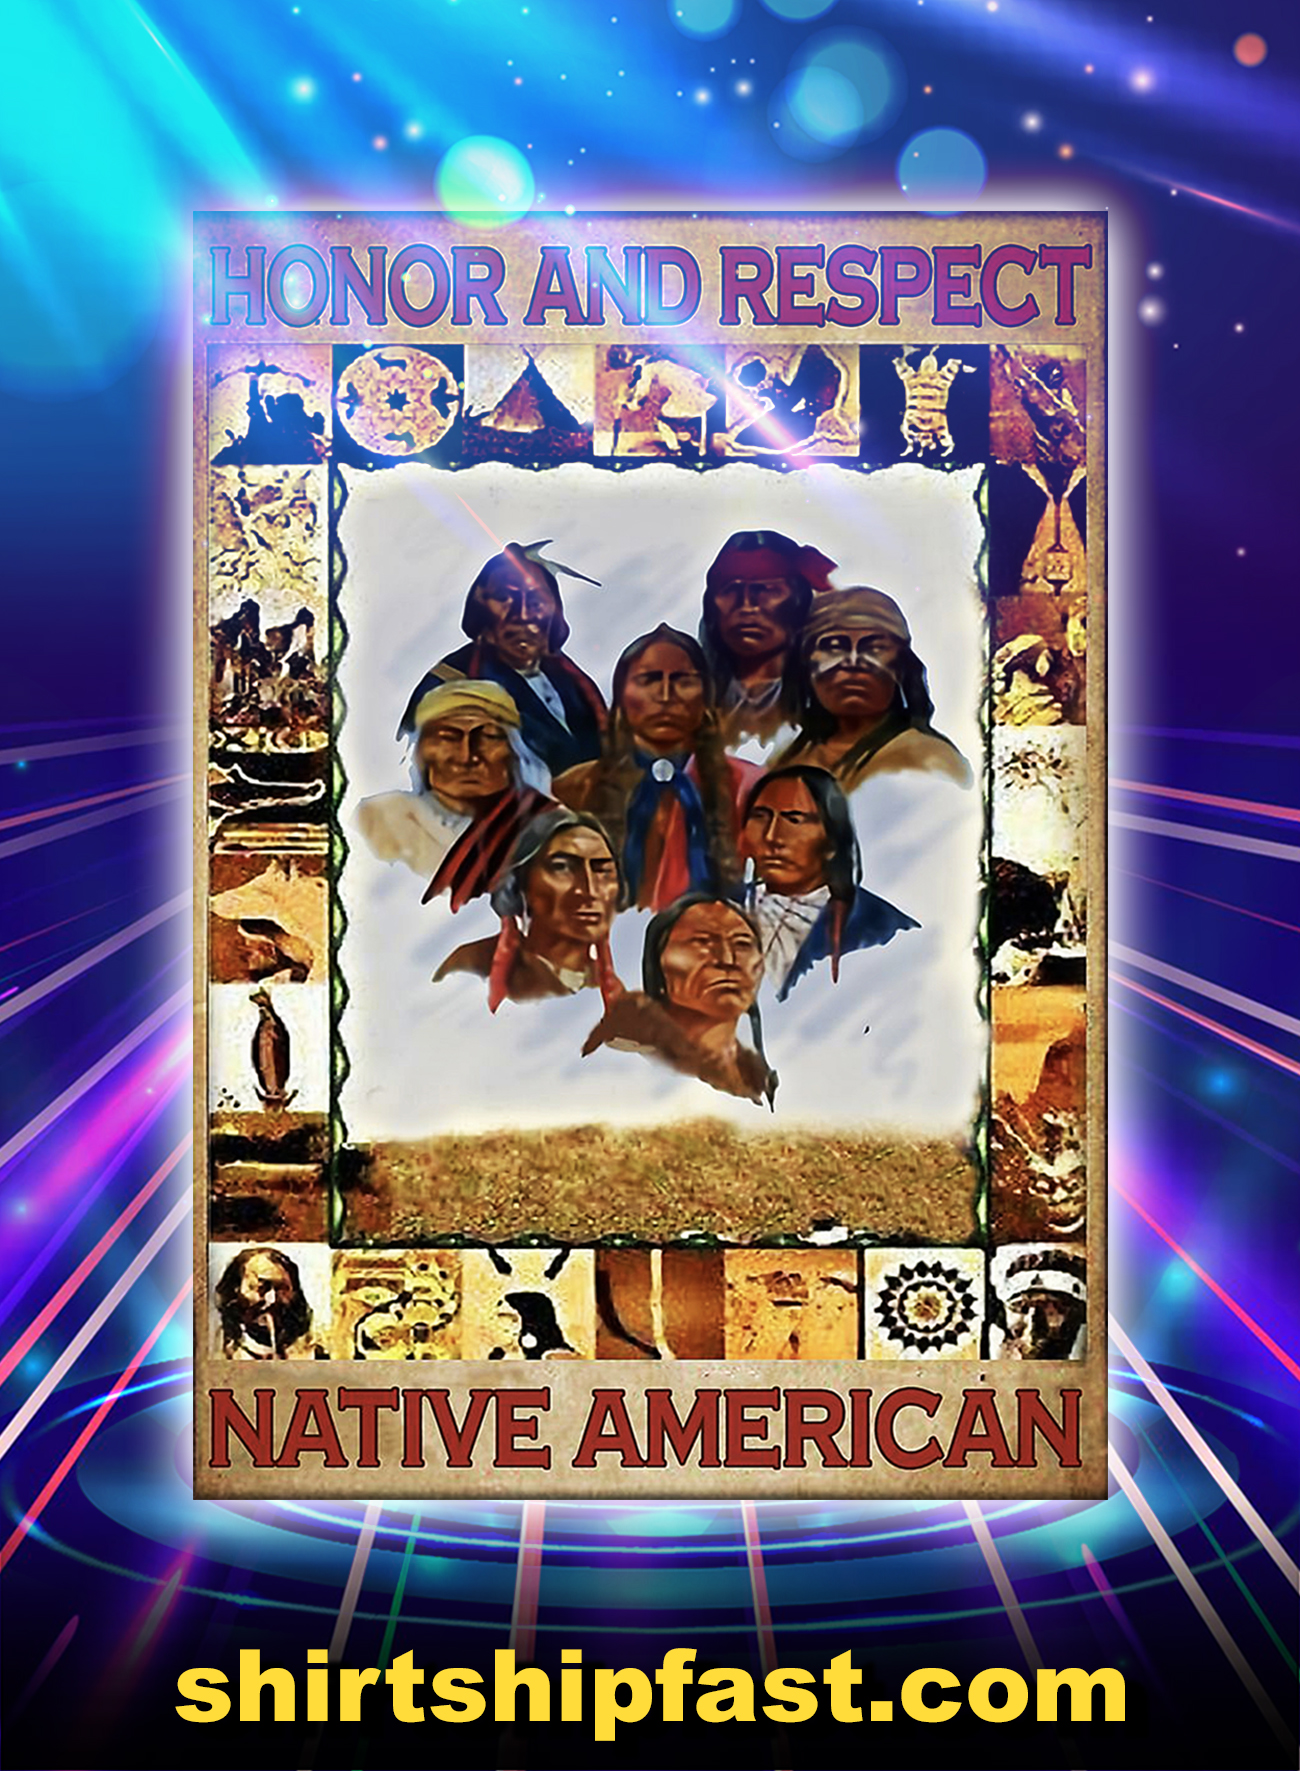 Honor and respect native american poster - A1